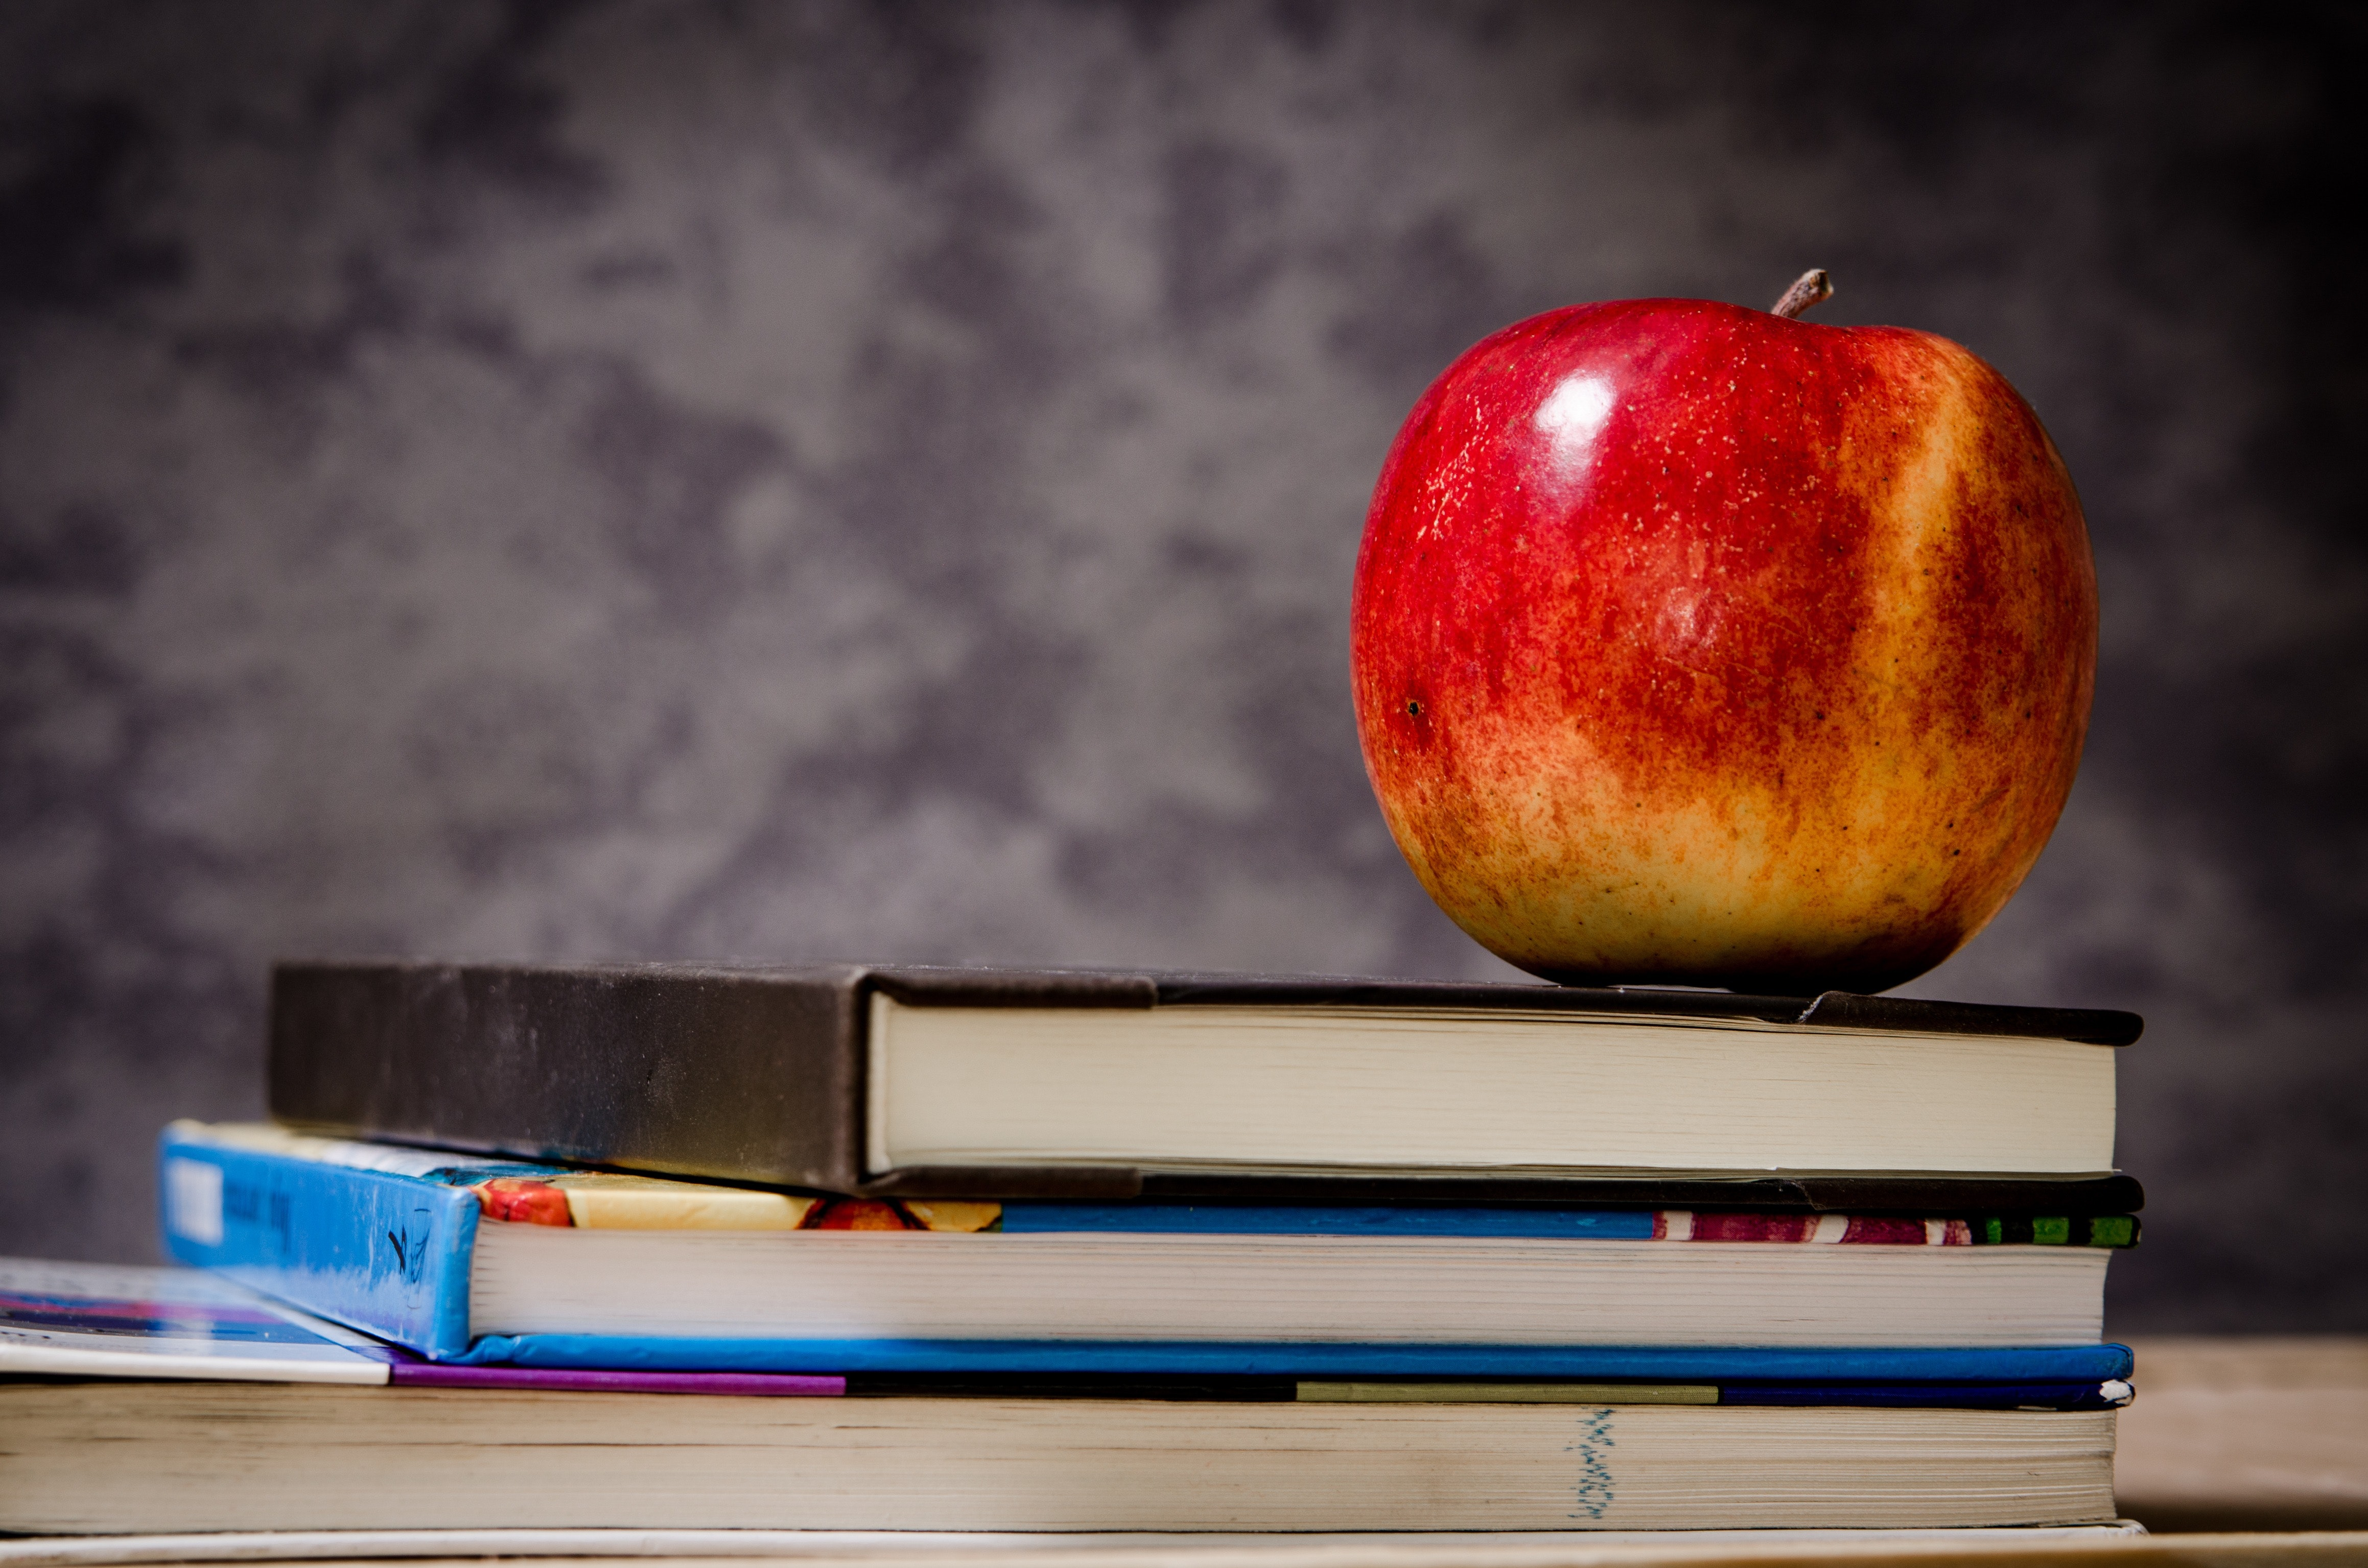 apple-blur-book-stack-256520